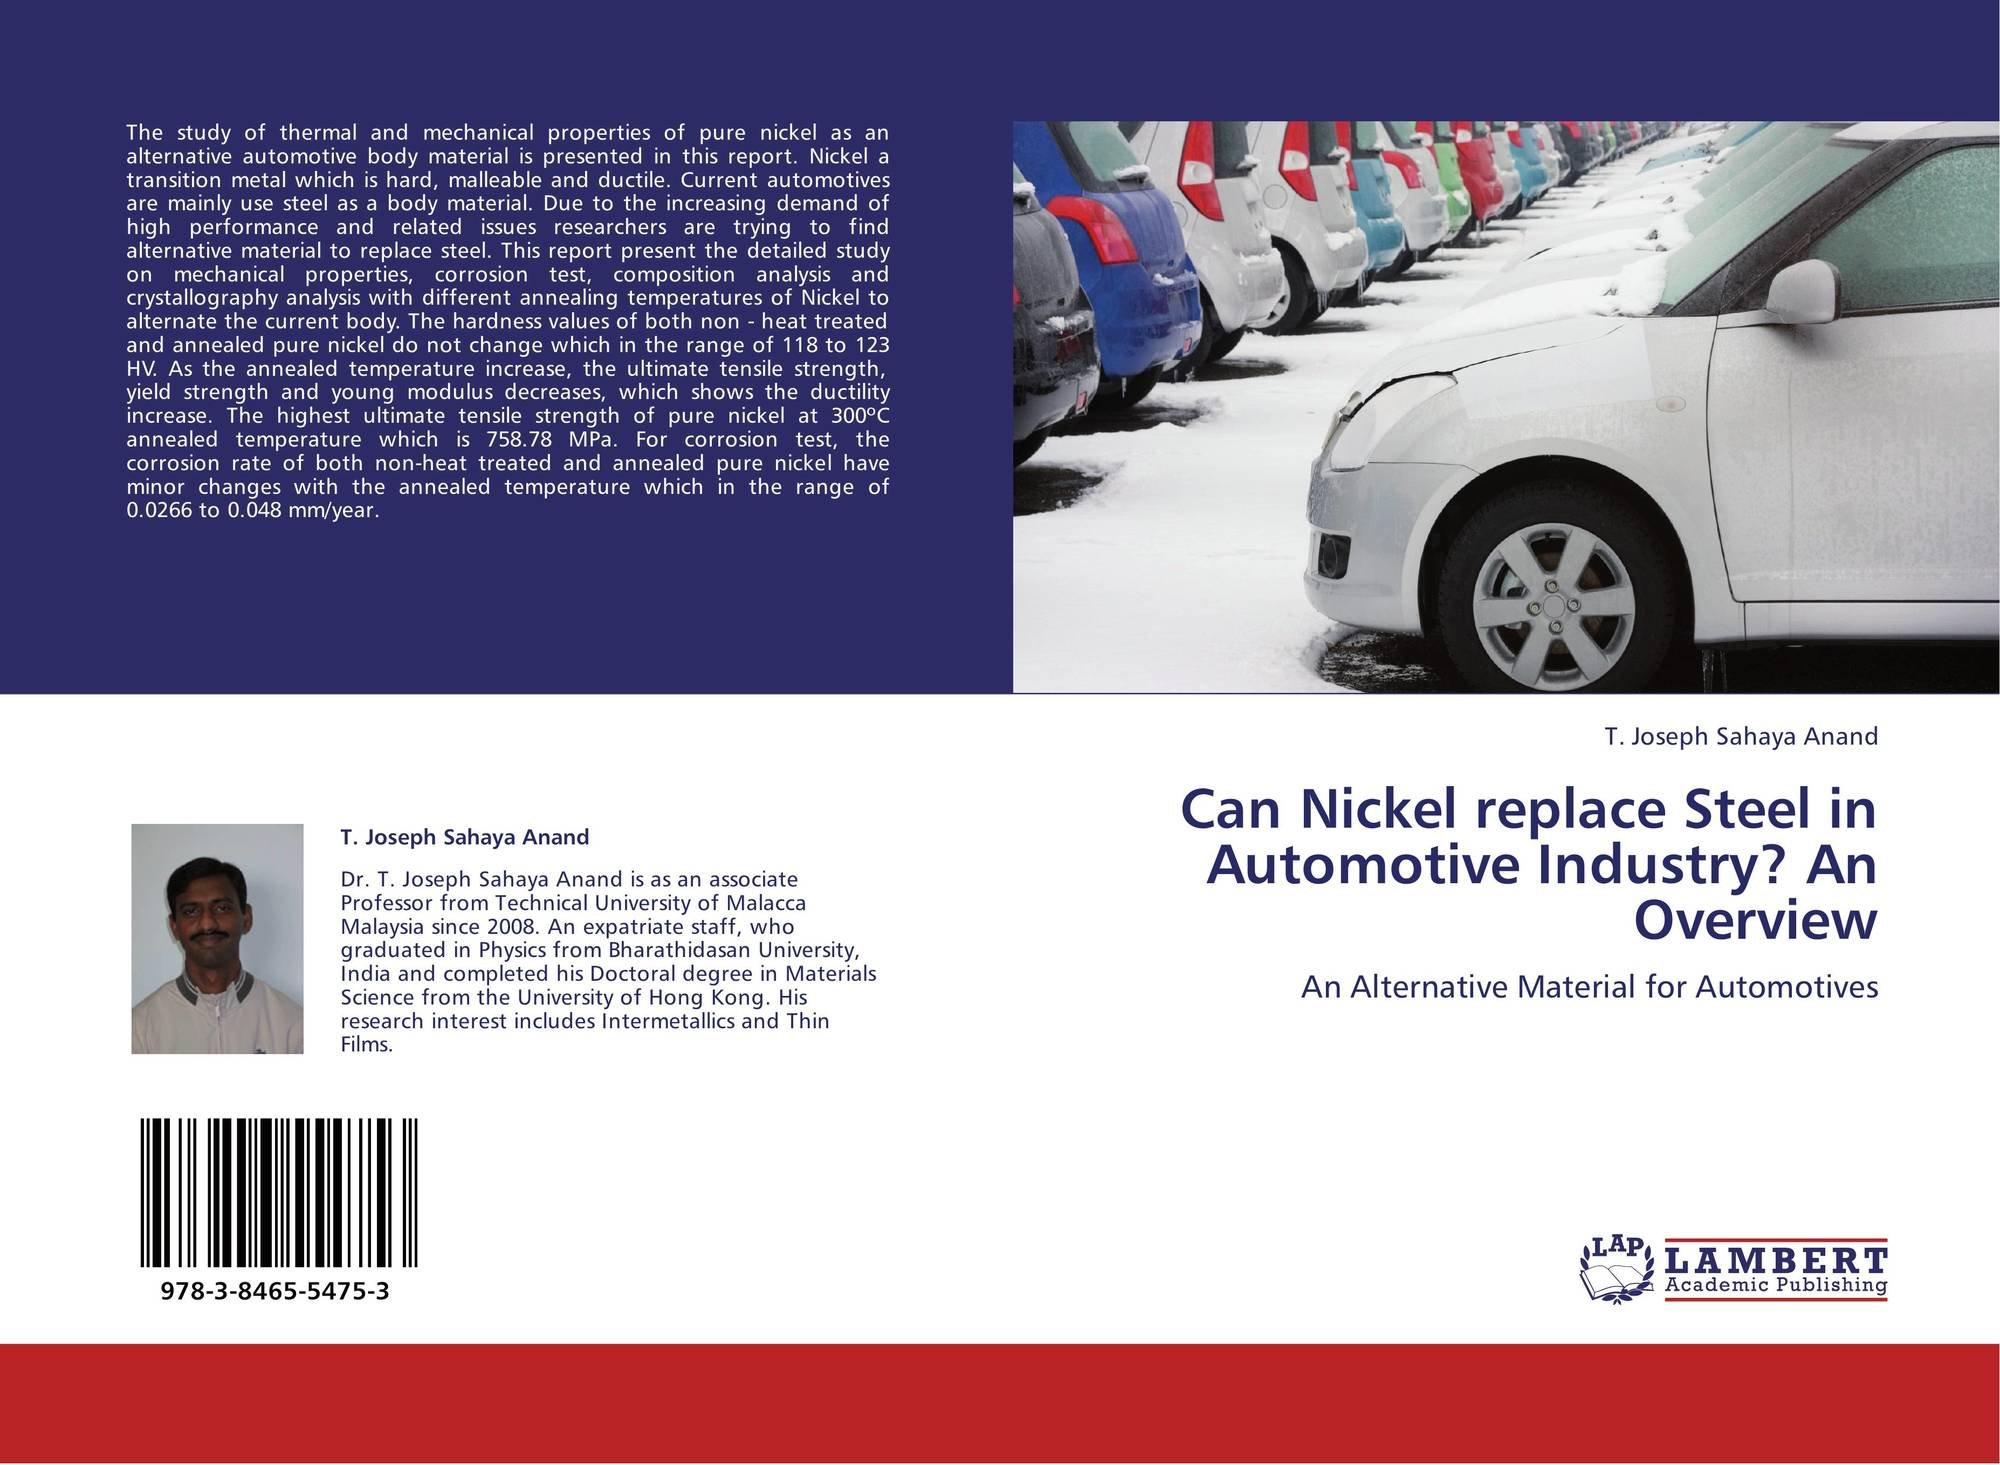 Can Nickel replace Steel in Automotive Industry? An Overview